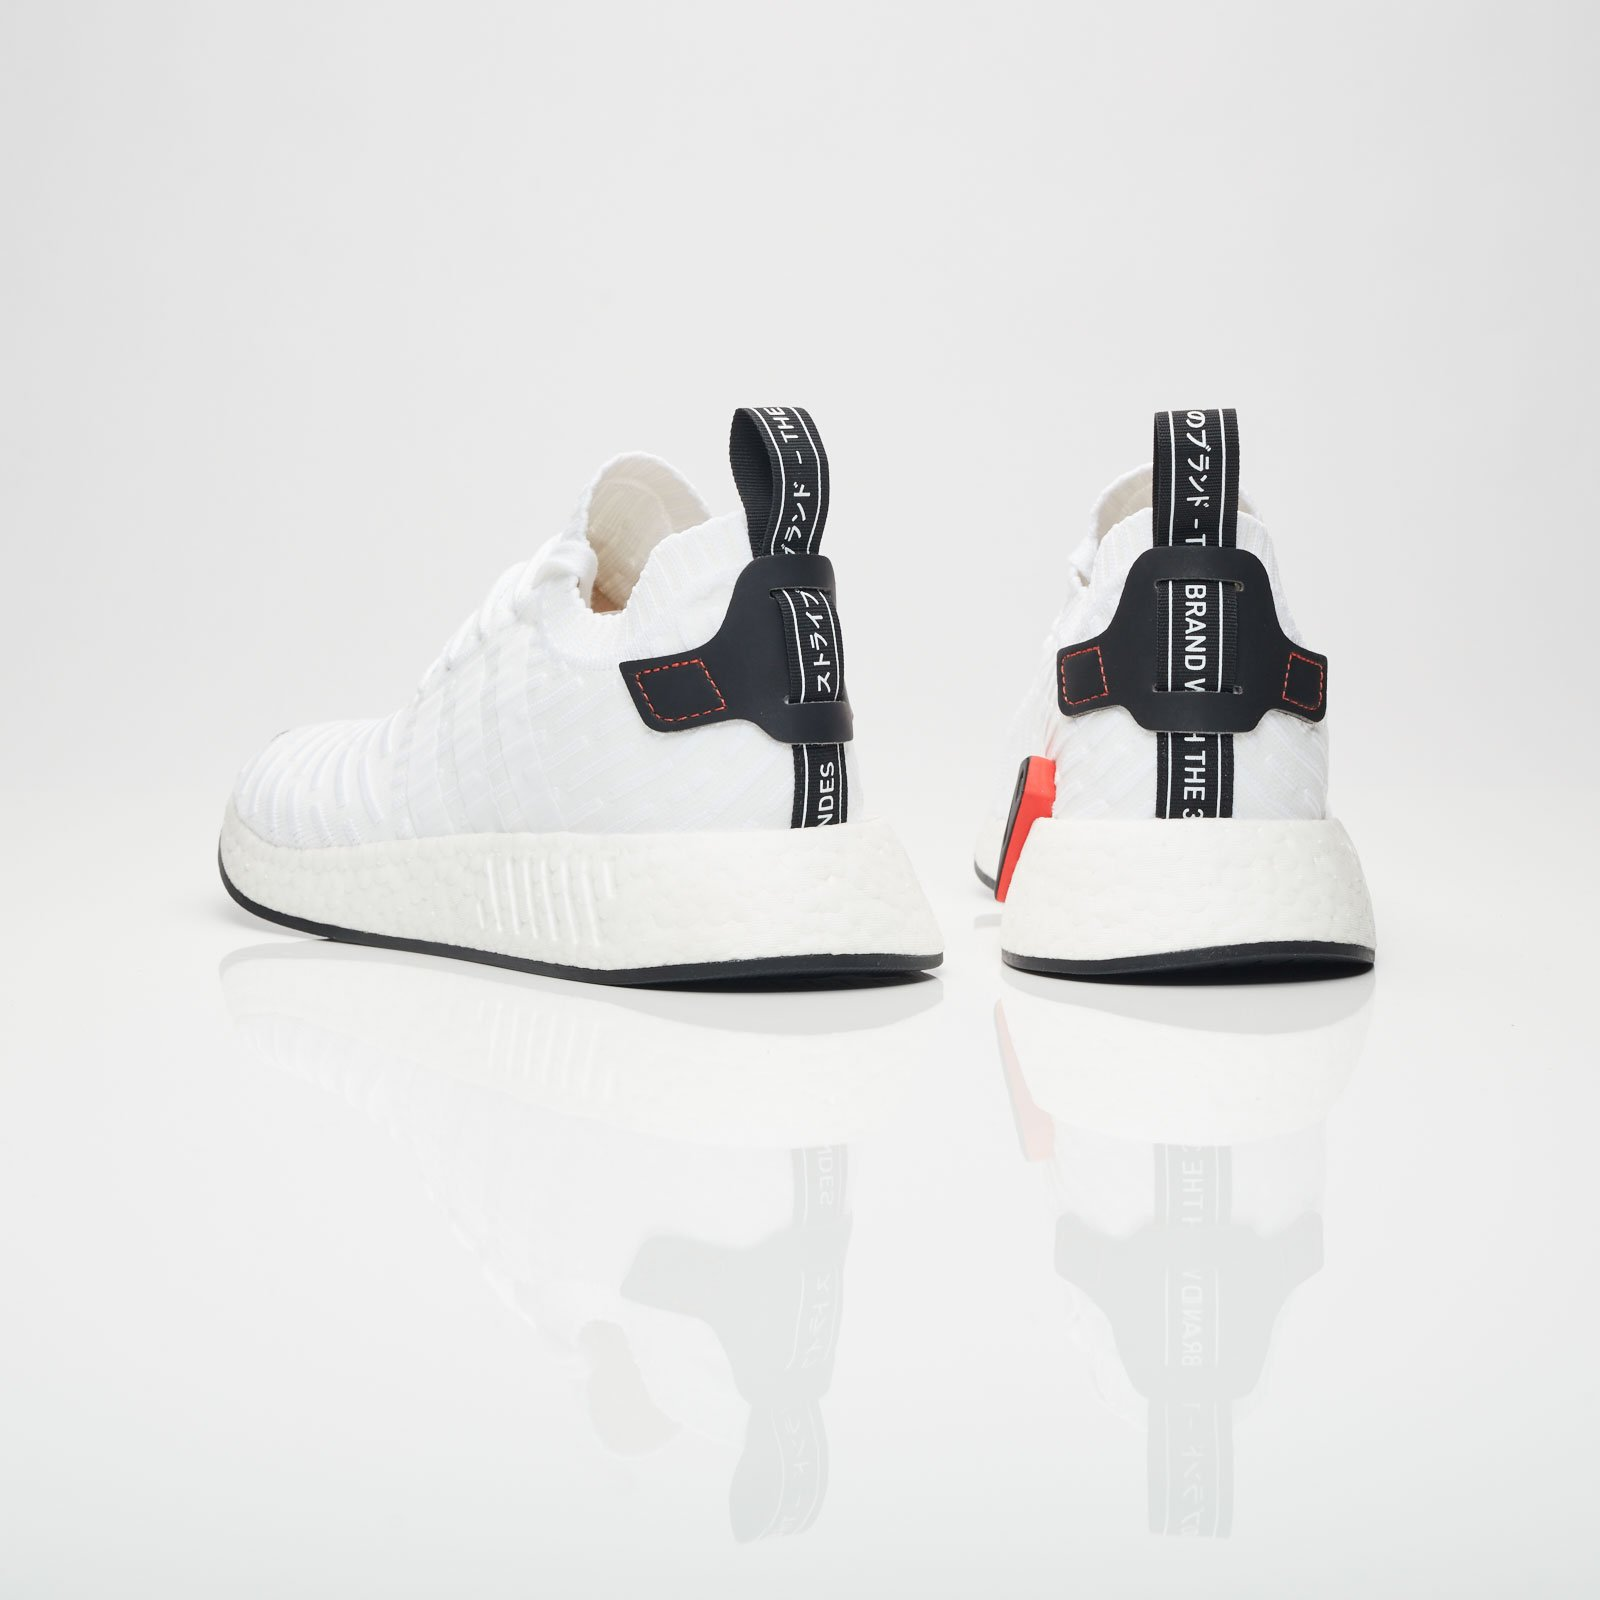 sports shoes 4657b f41d9 adidas NMD_R2 PK - By3015 - Sneakersnstuff | sneakers ...